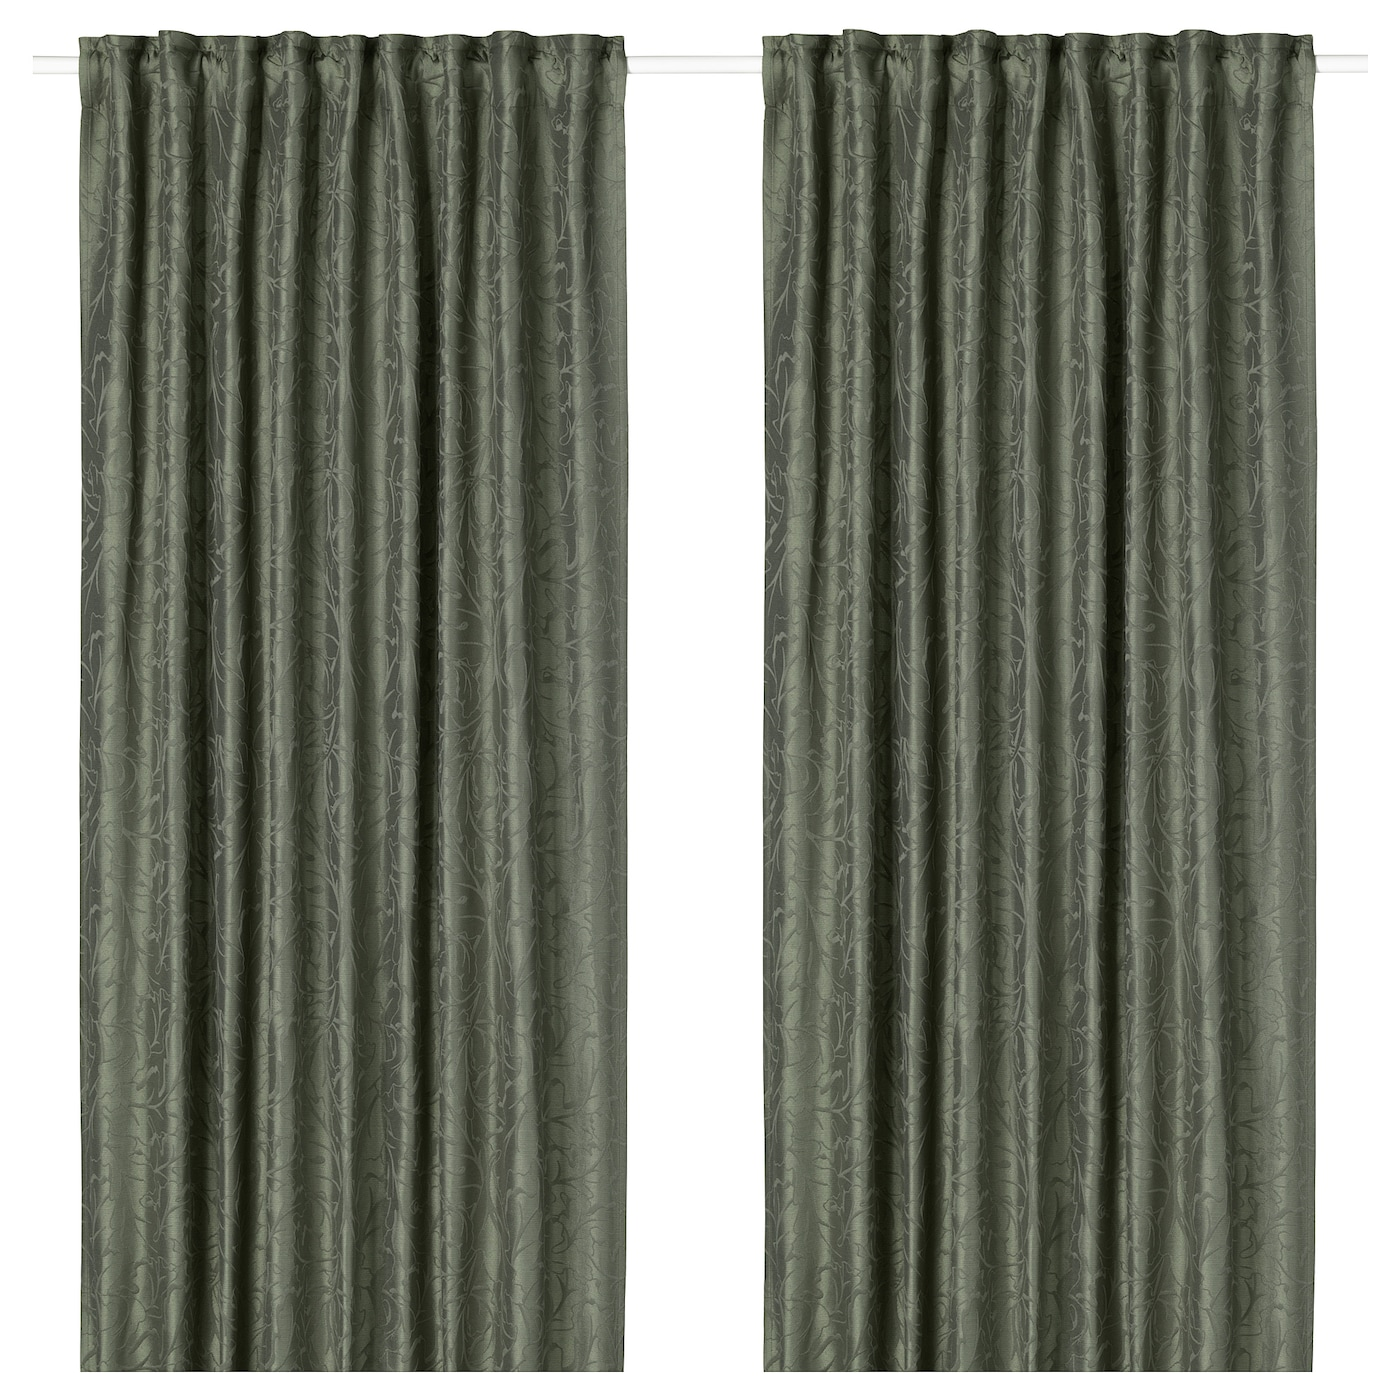 IKEA FRITSE curtains, 1 pair The curtains can be used on a curtain rod or a curtain track.